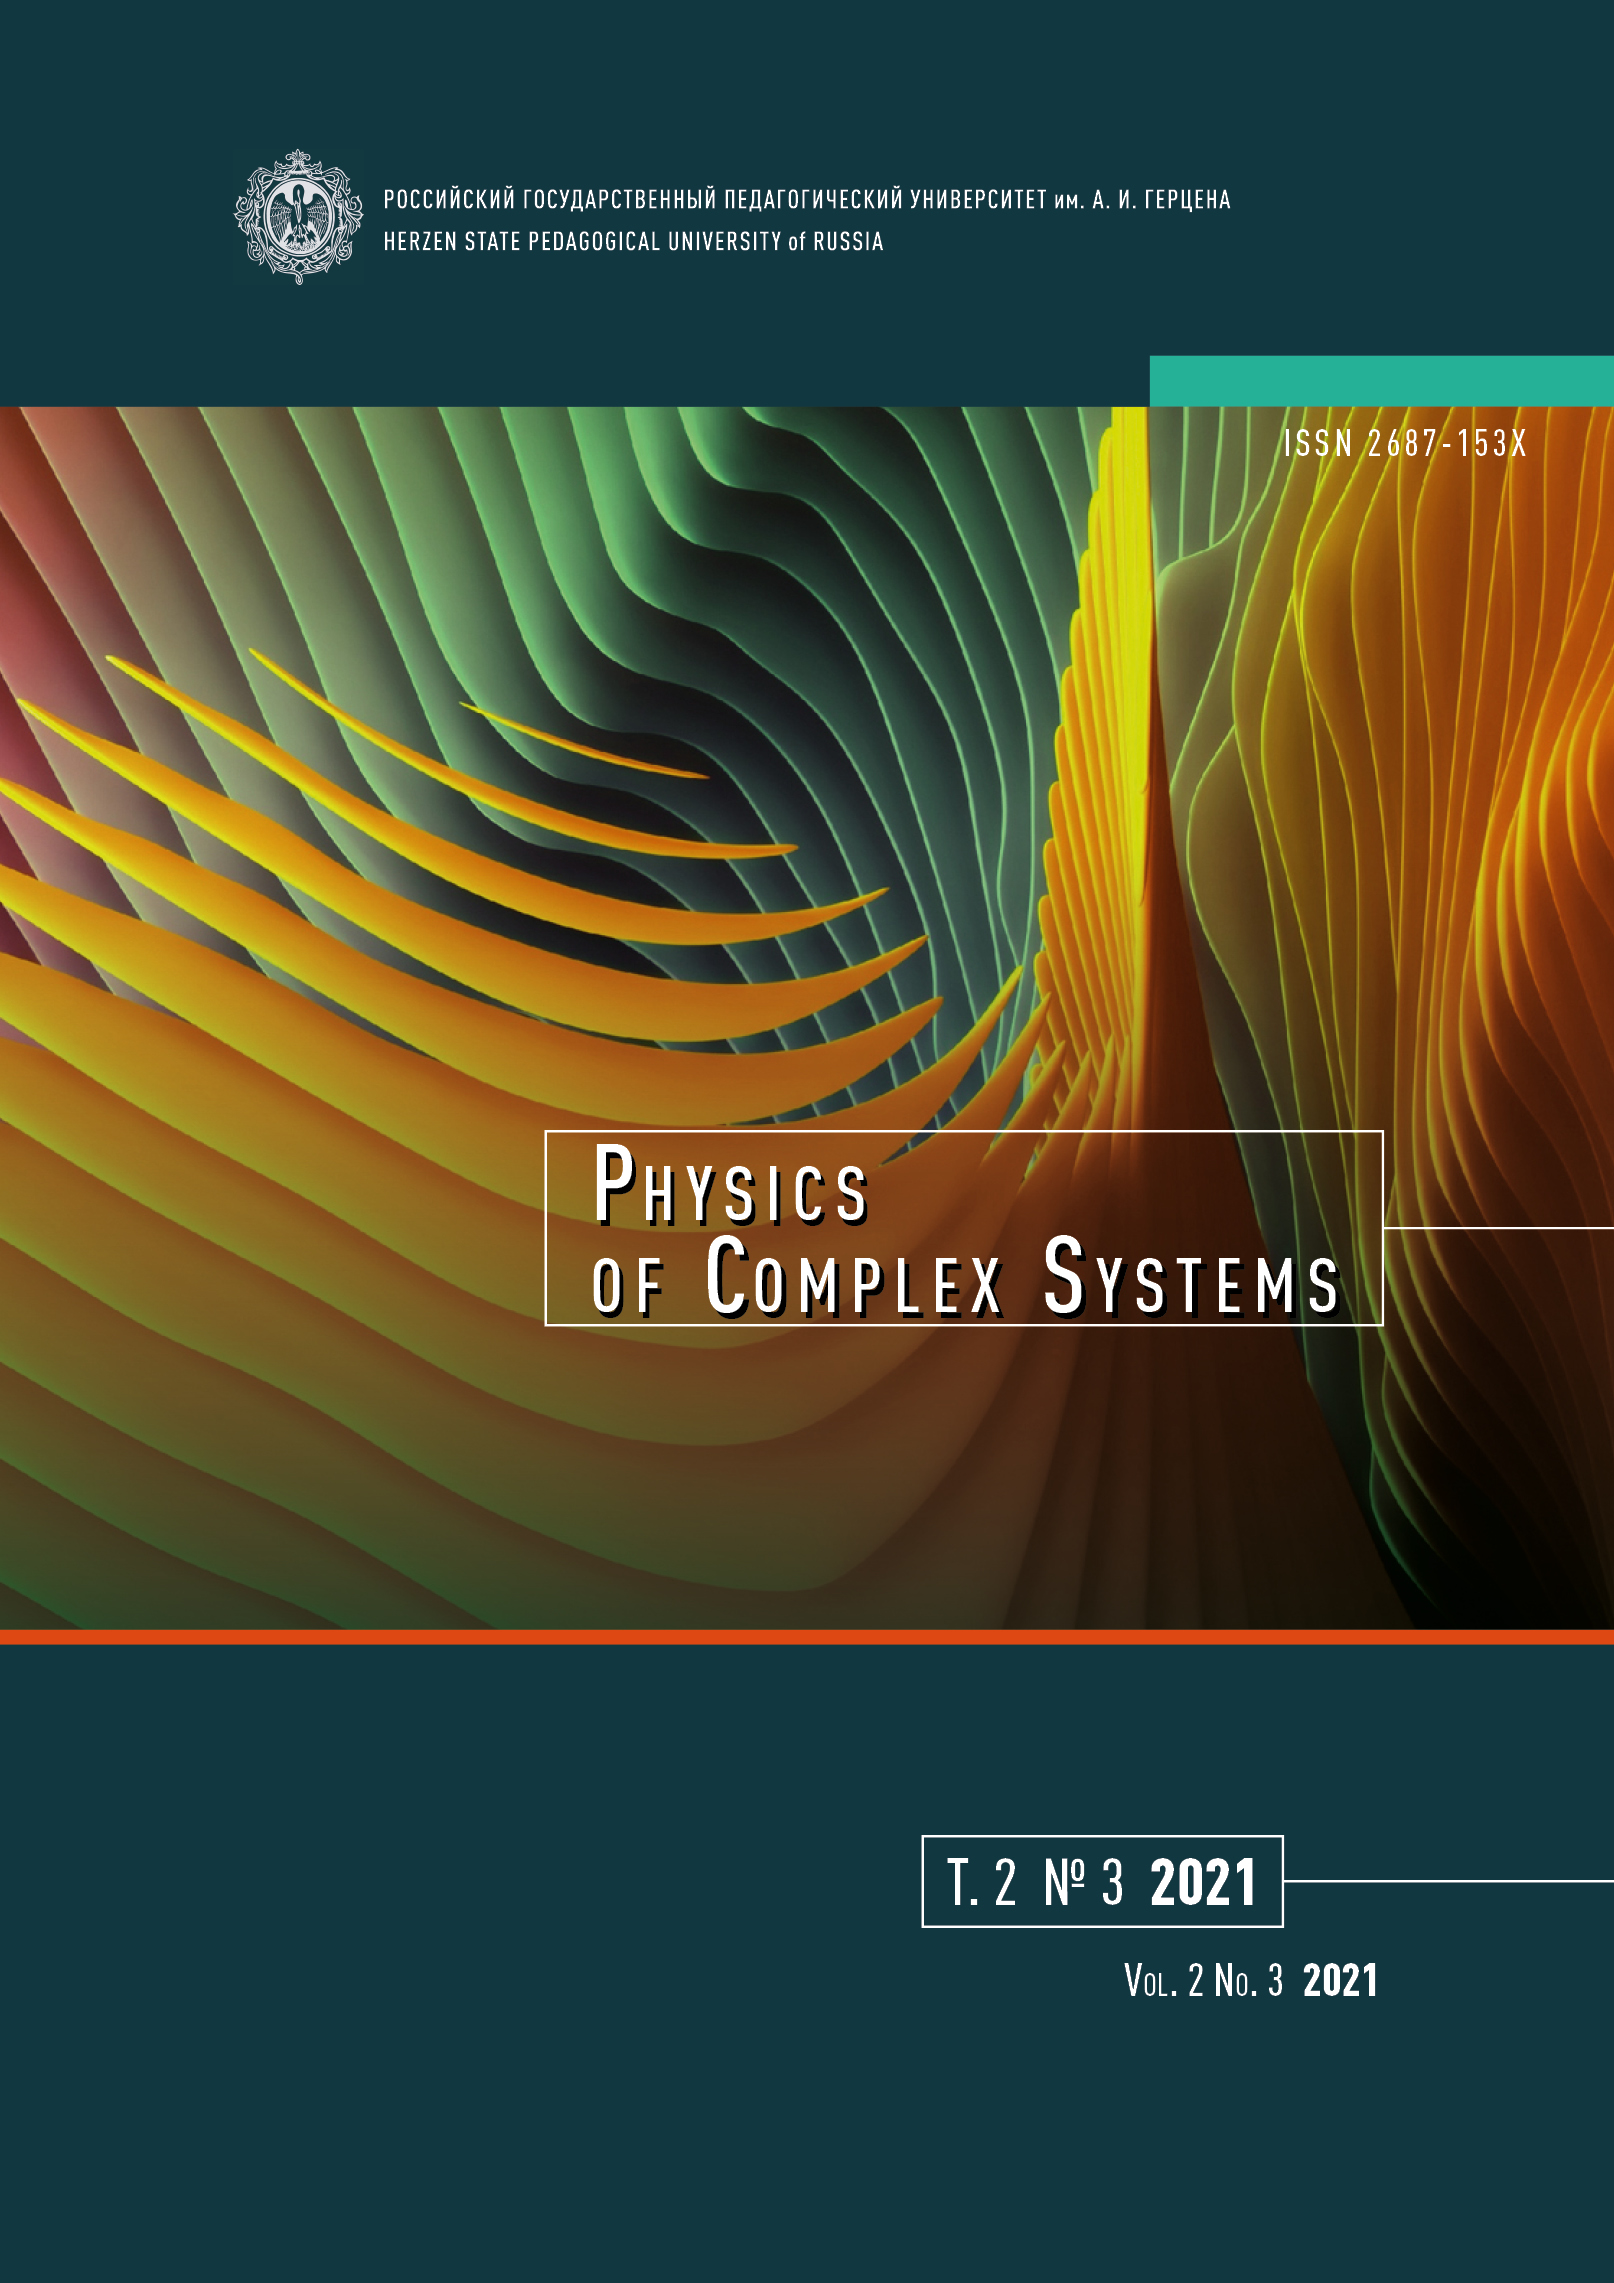 """Cover of the journal """"Physics of Complex Systems"""" (vol. 2, no. 3)"""